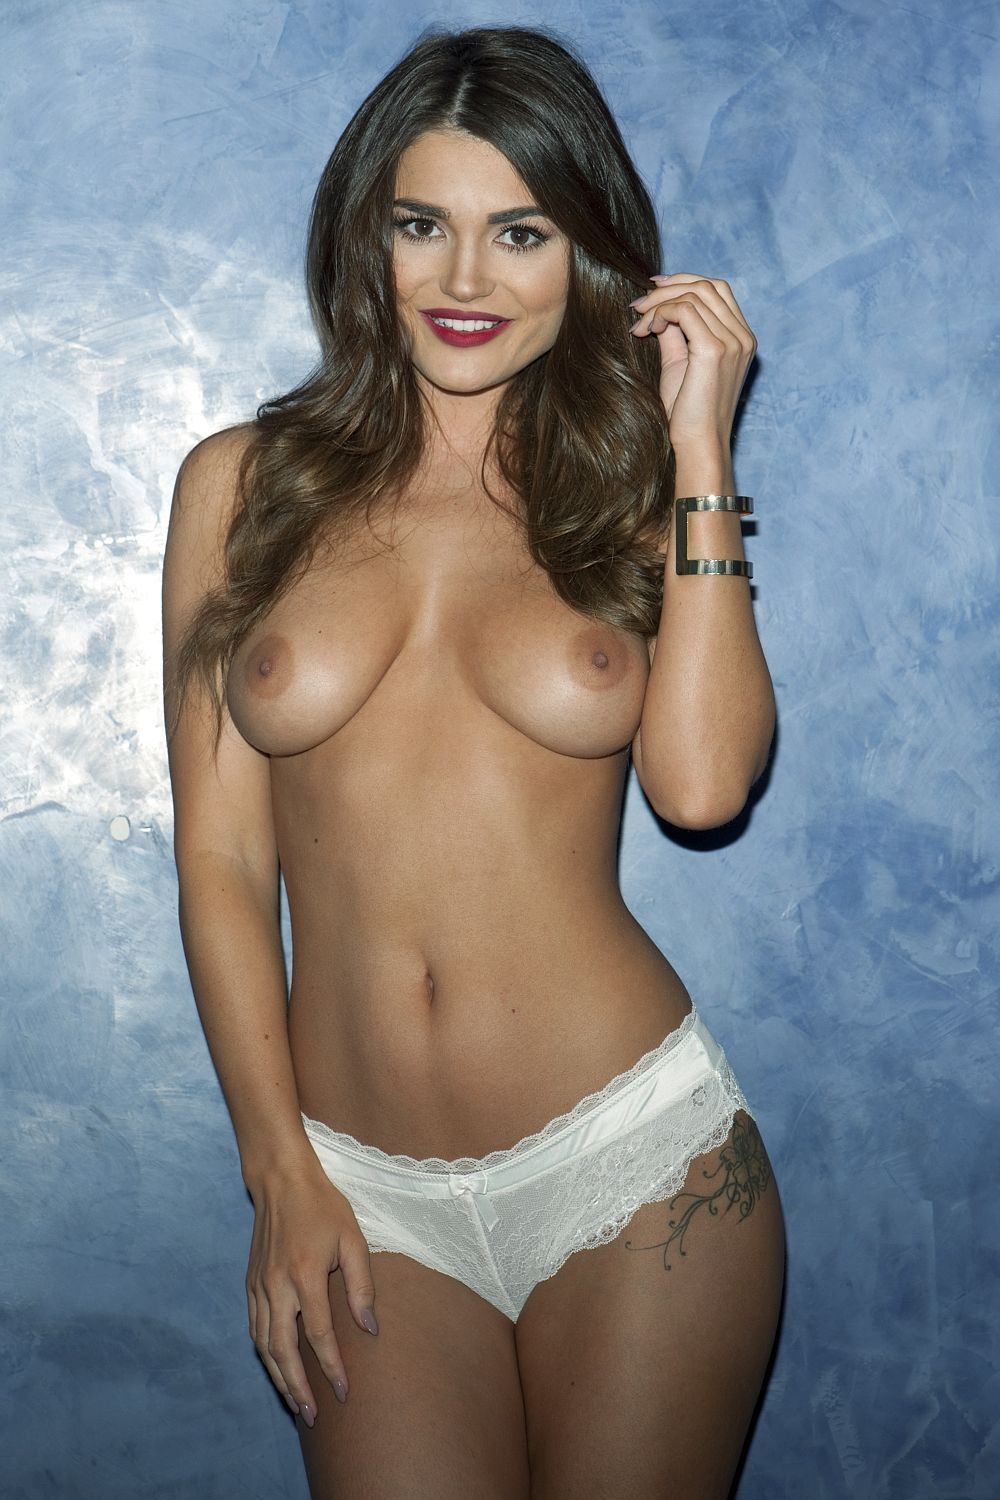 India Reynolds Topless (2 New Photos)